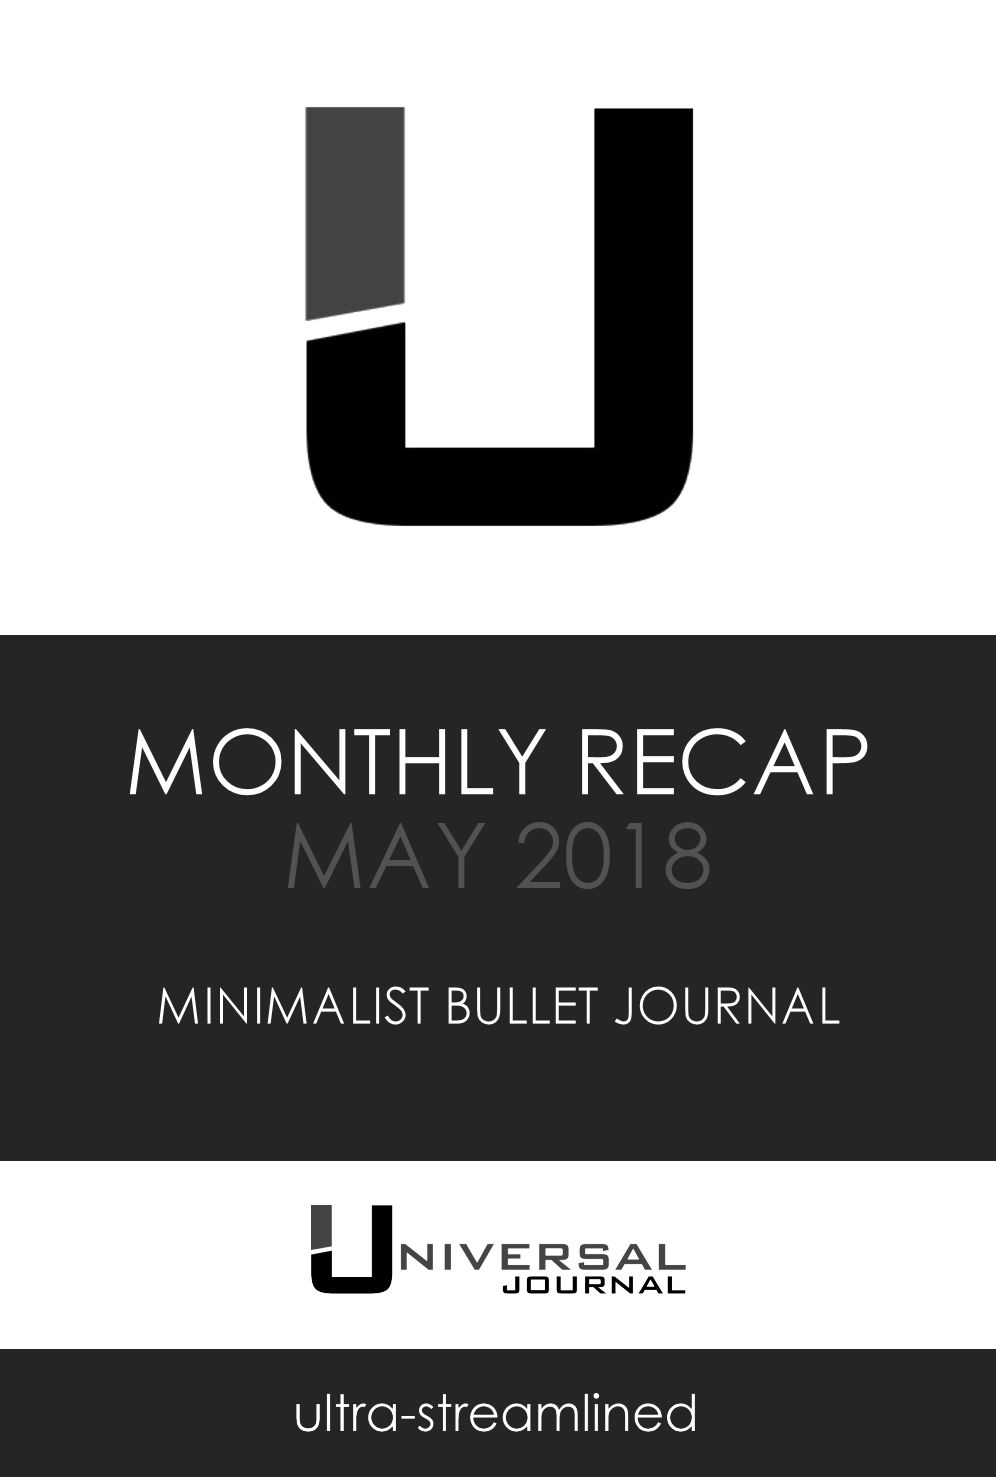 bullet journal monthly recap MAY 2018 summary